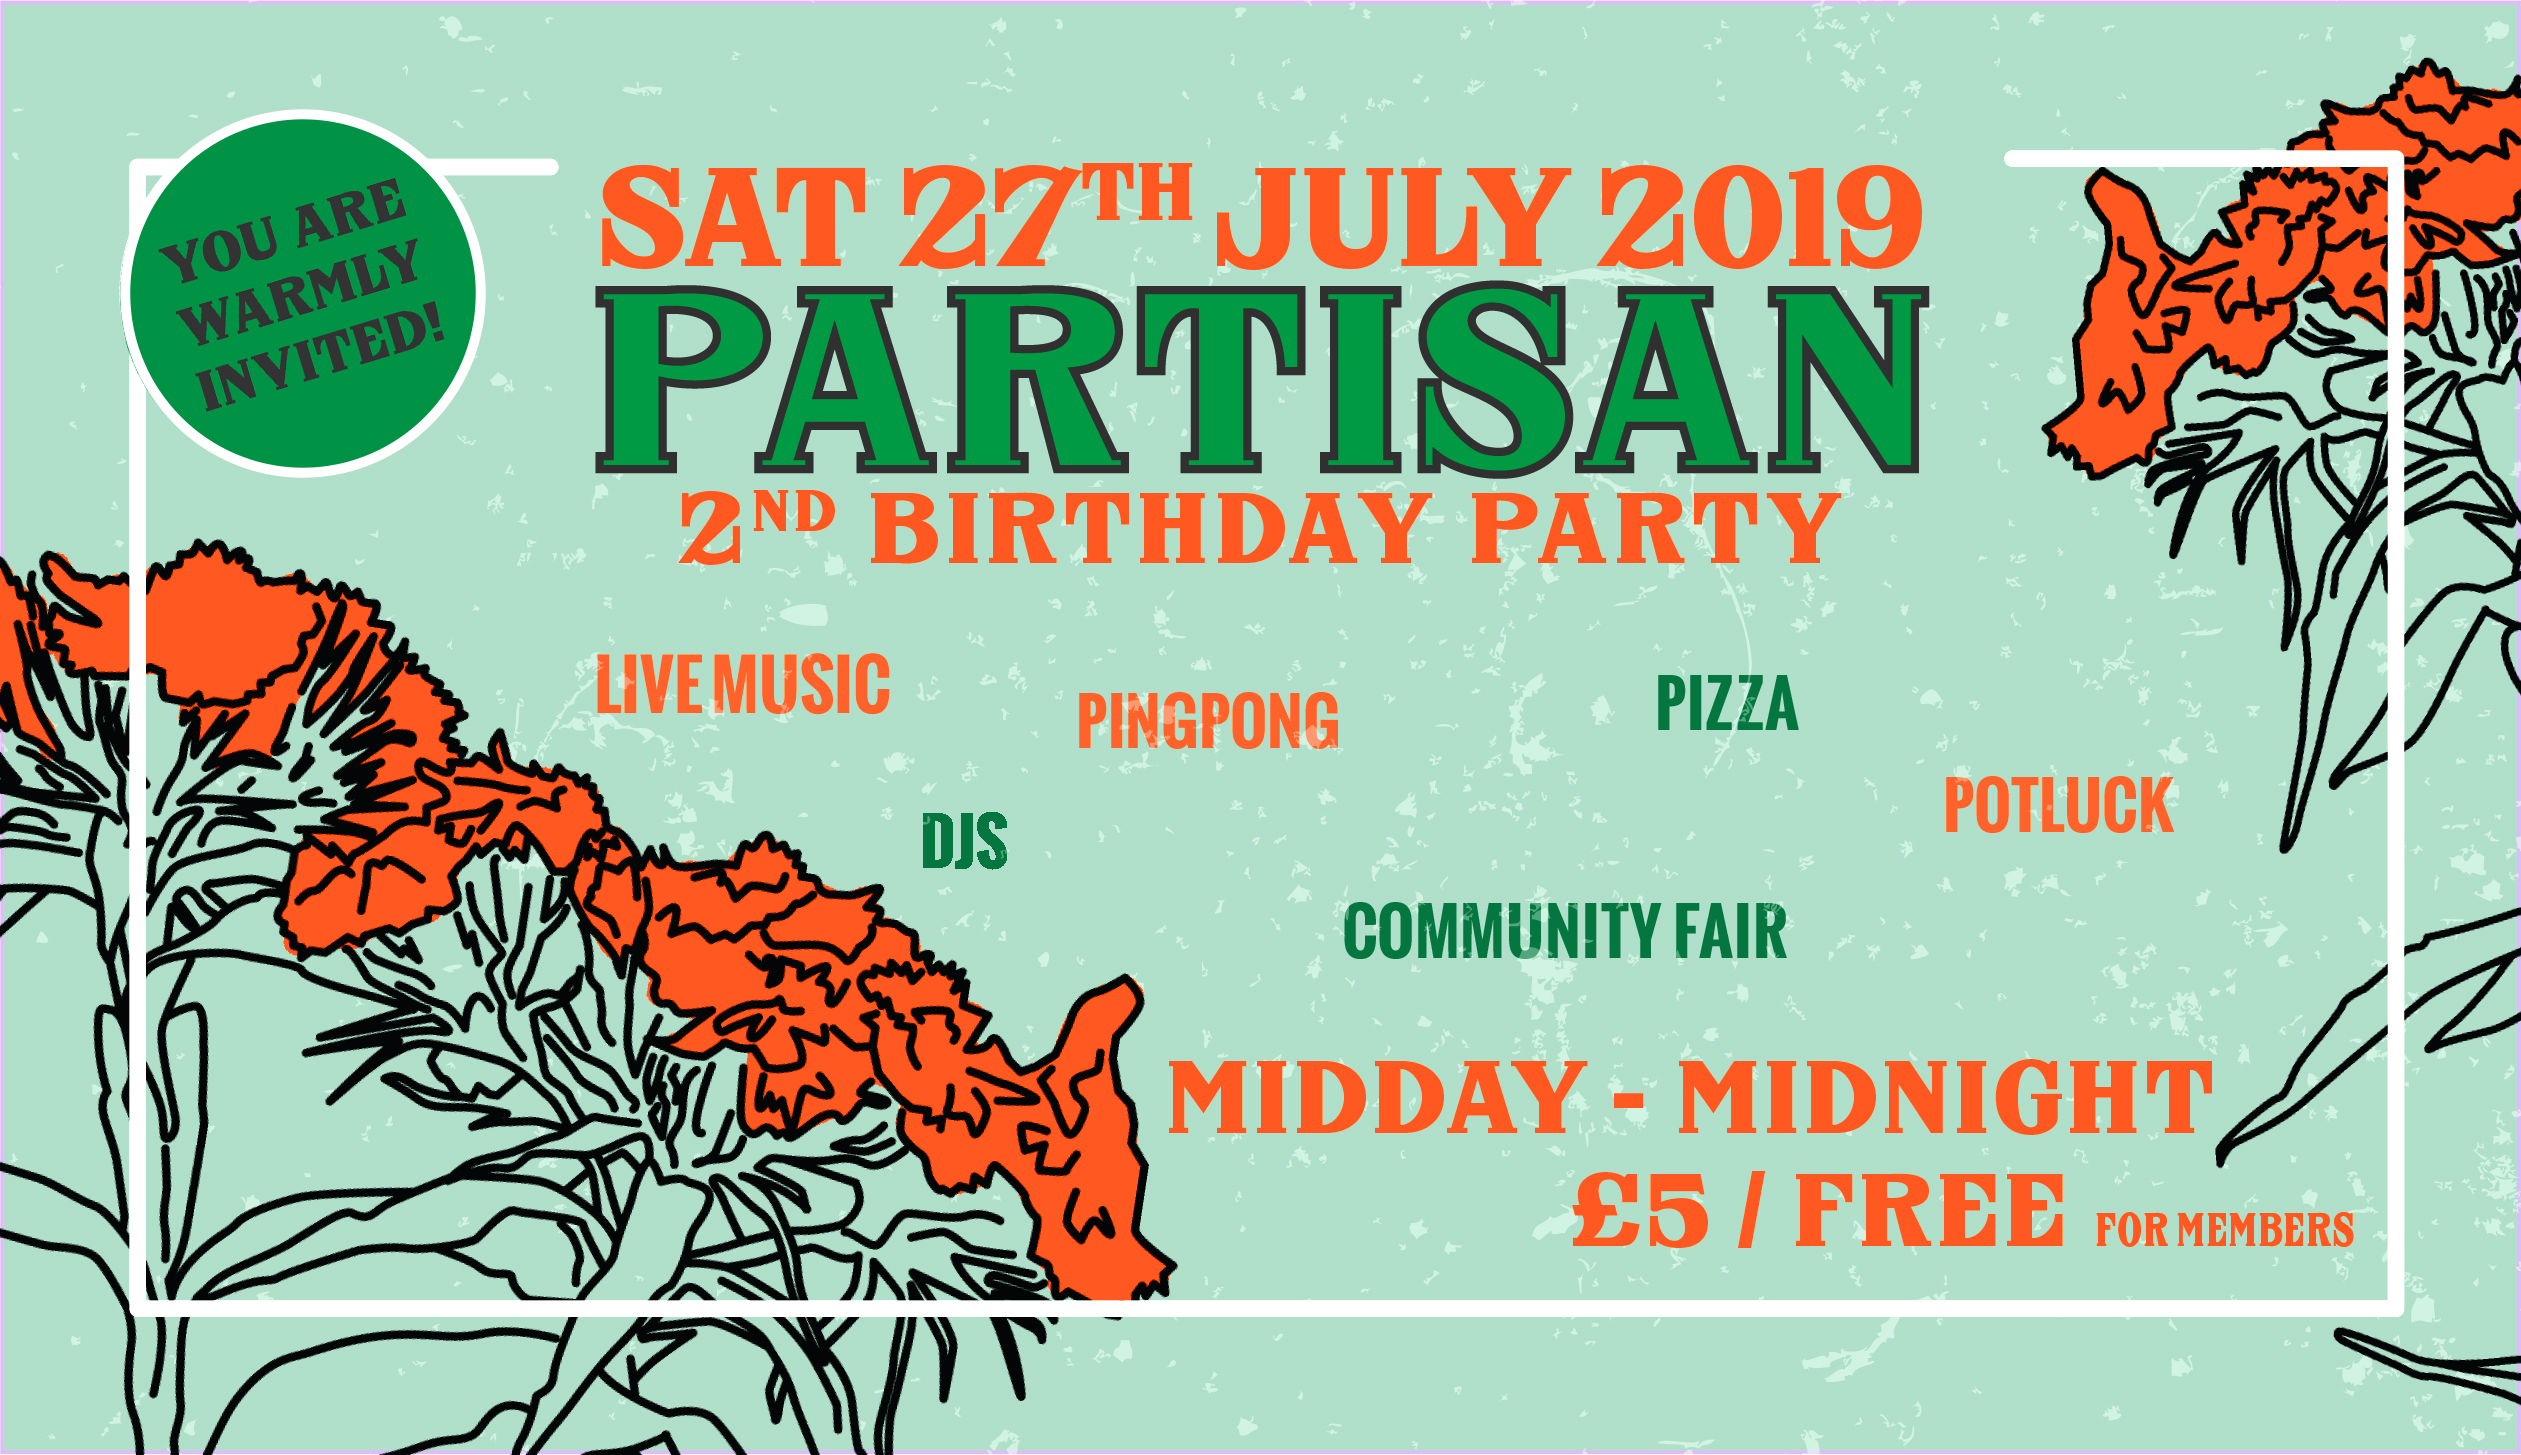 Partisan's 2nd Birthday Party!